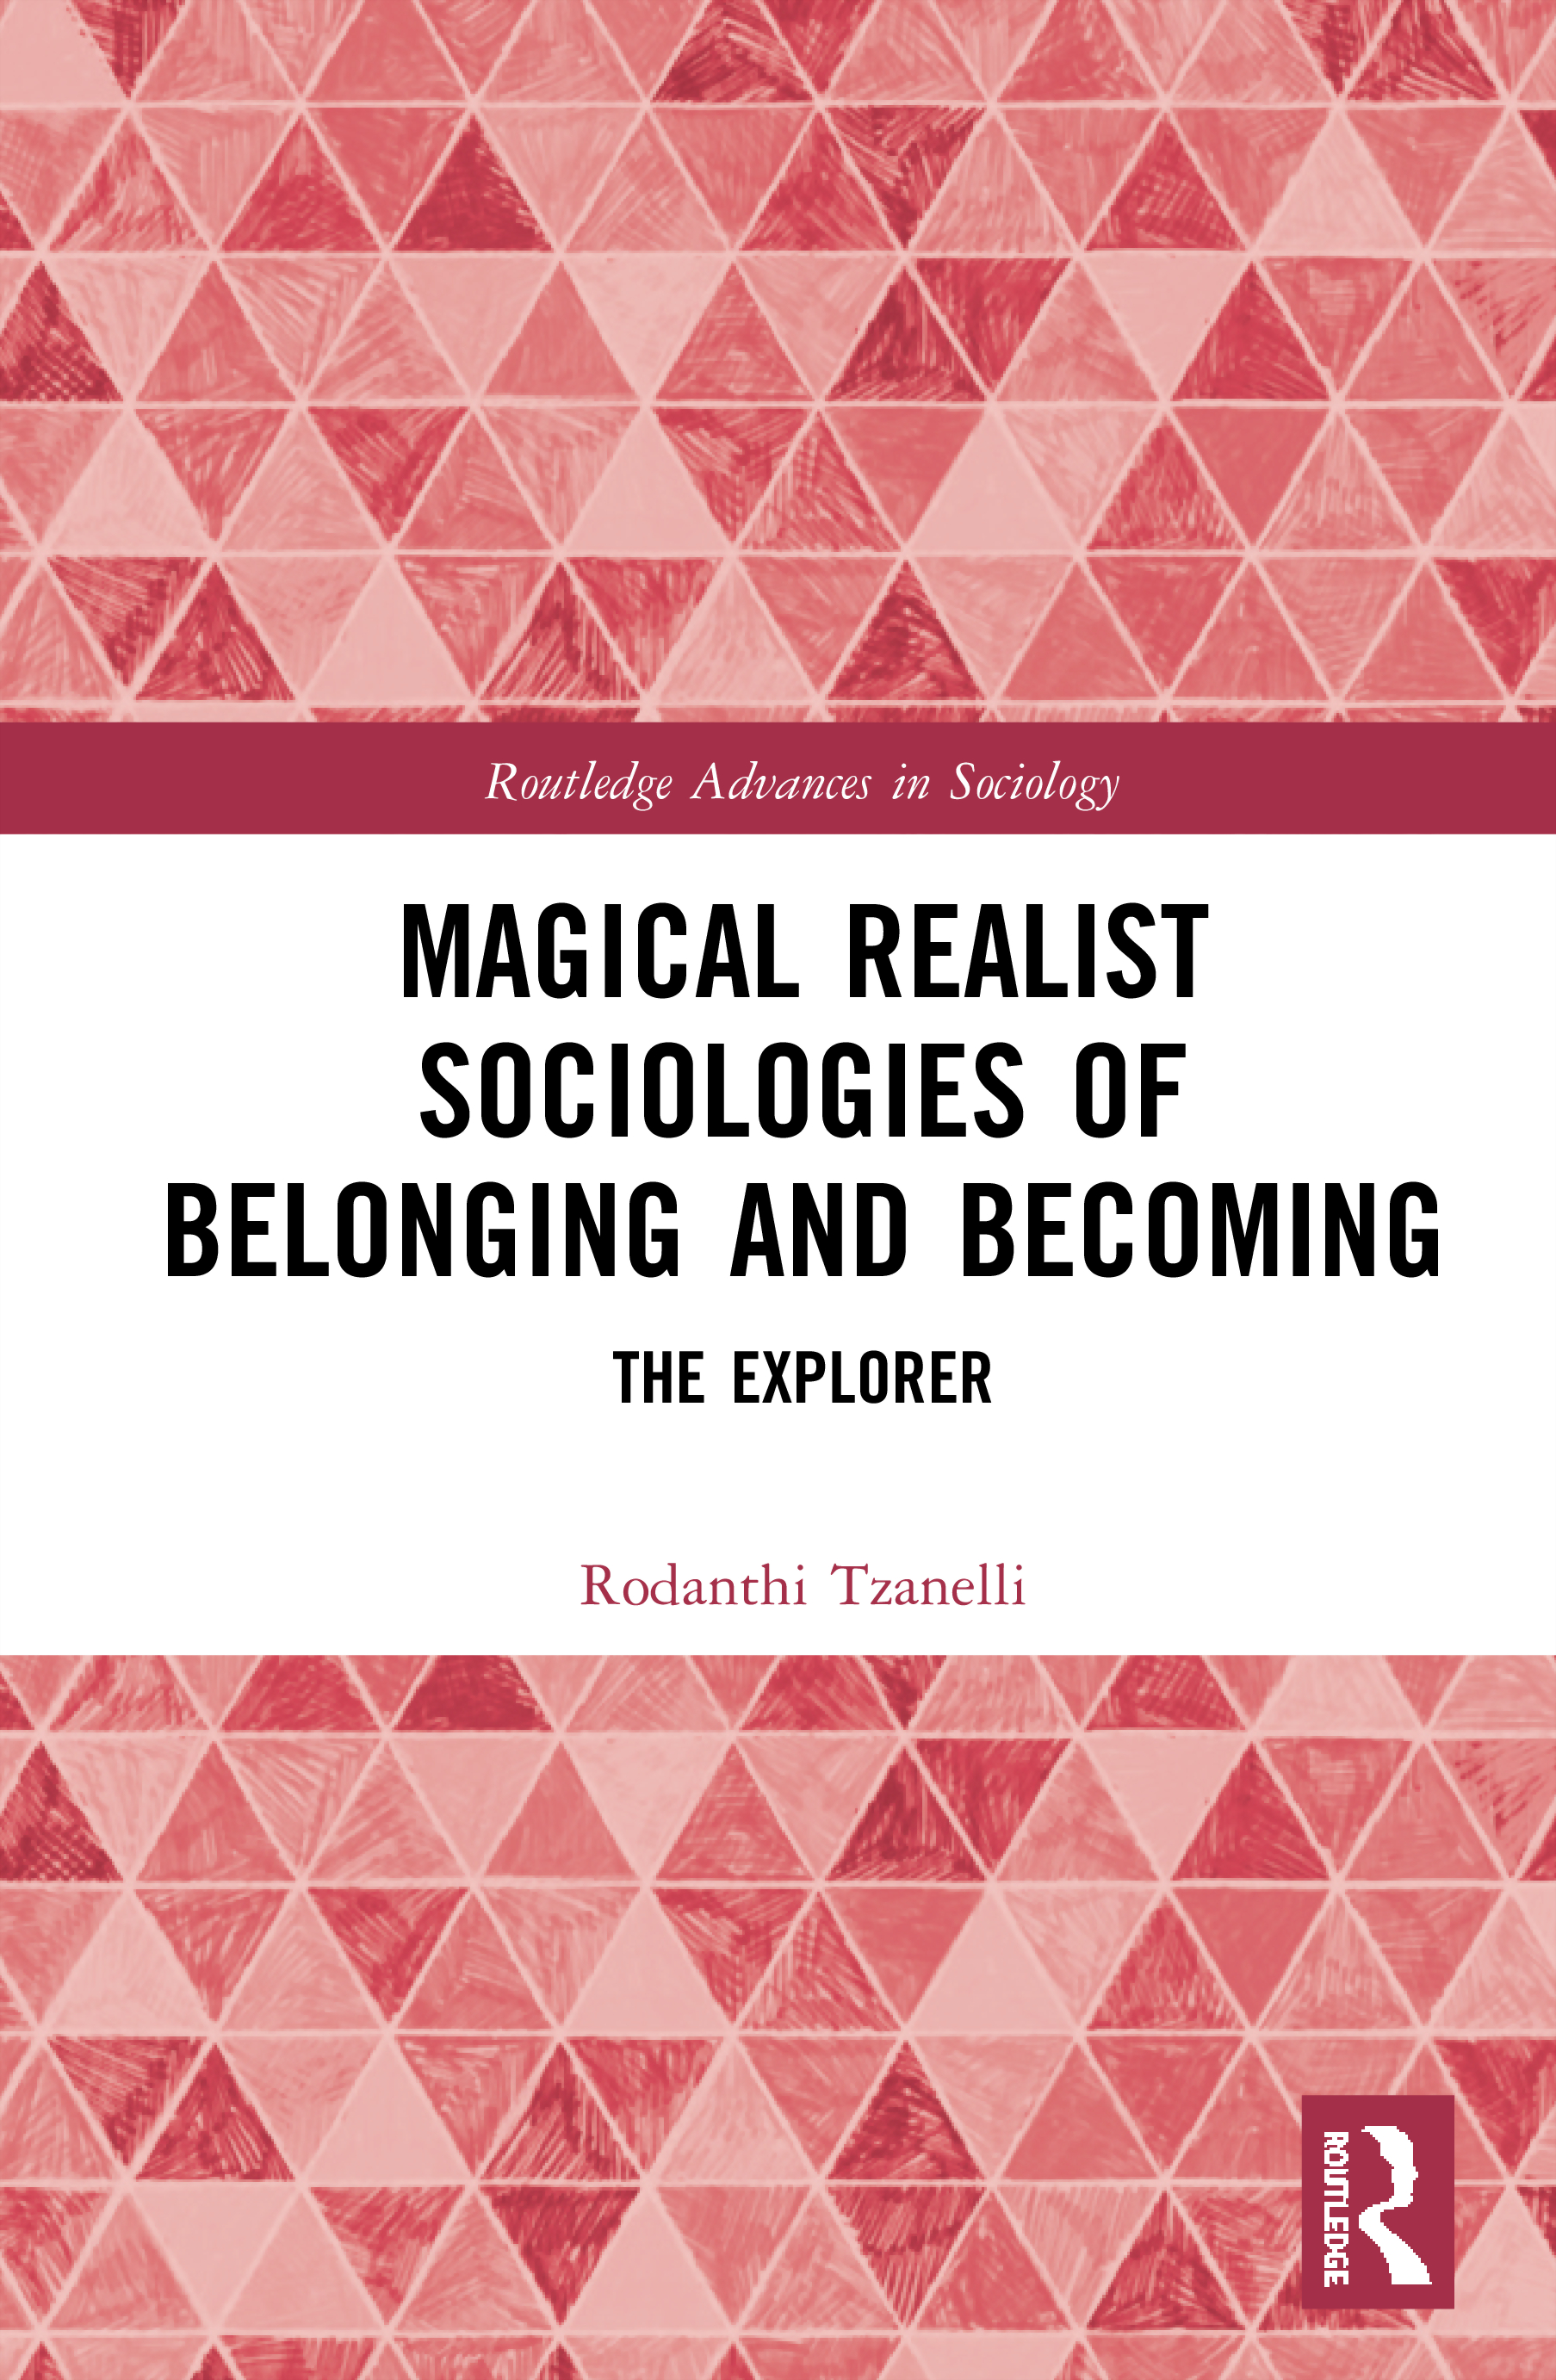 Magical Realist Sociologies of Belonging and Becoming: The Explorer book cover